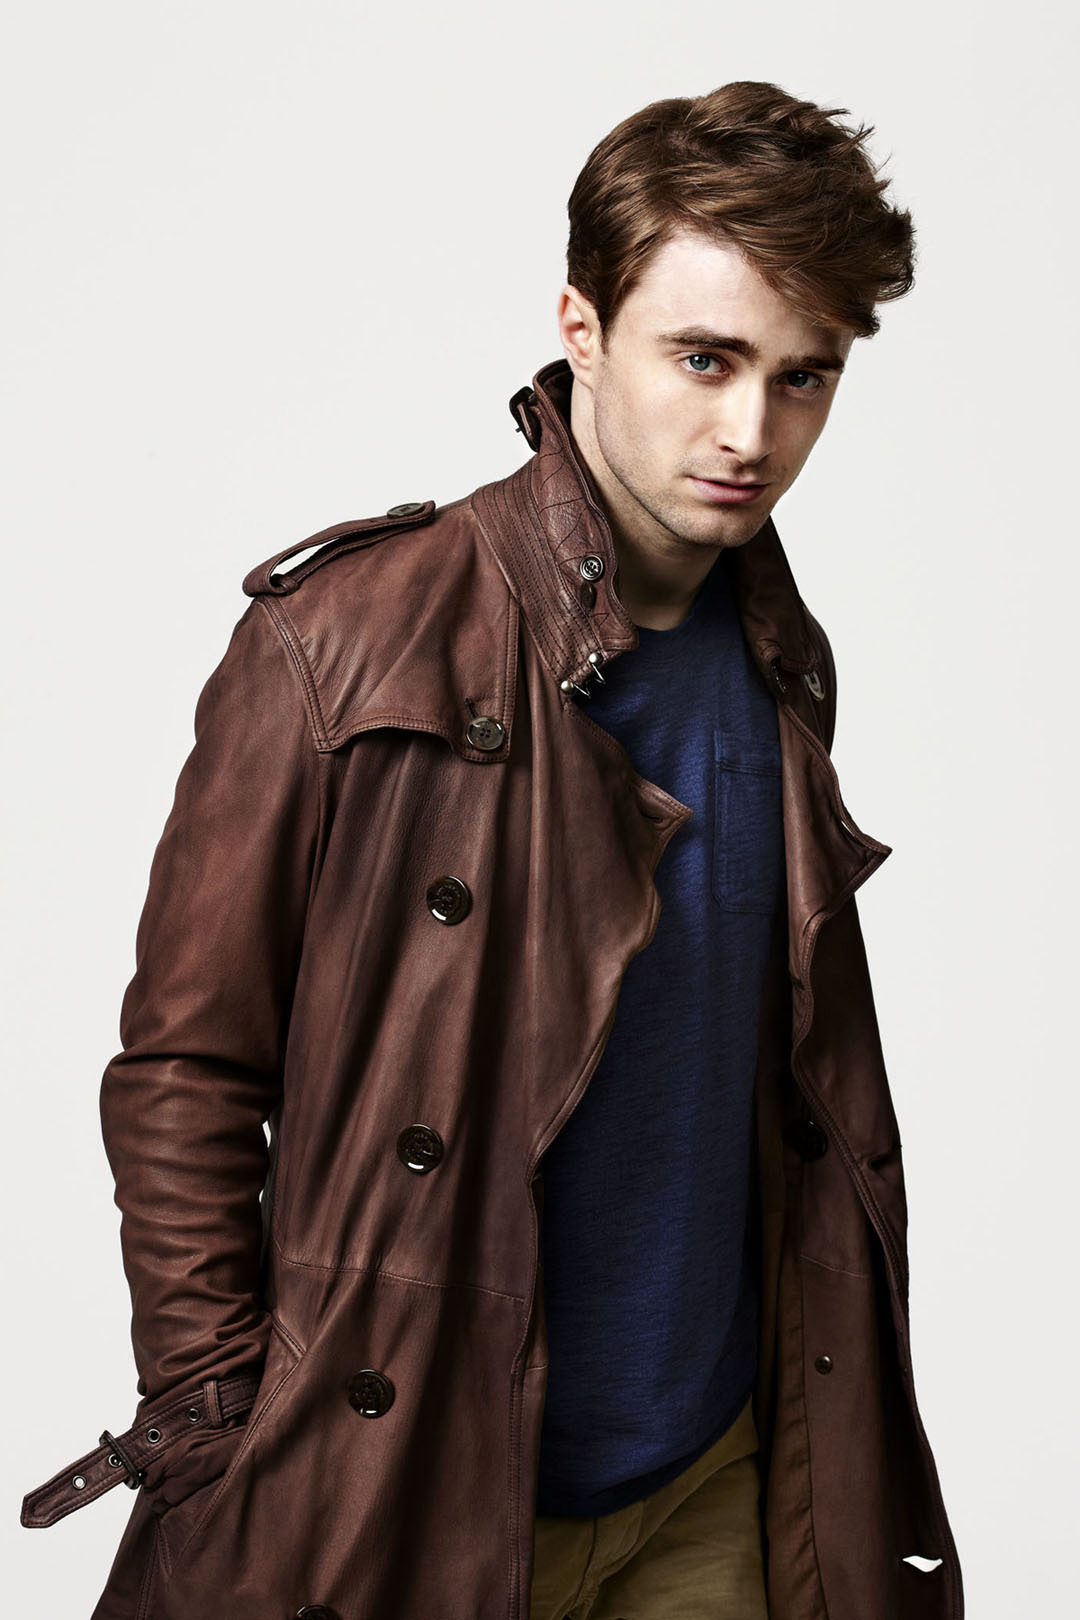 Daniel Radcliffe by Danielle Levitt. Such an cool guy, looks hot in leather, danced the entire shoot and even did a lot of air kicks, i mean……